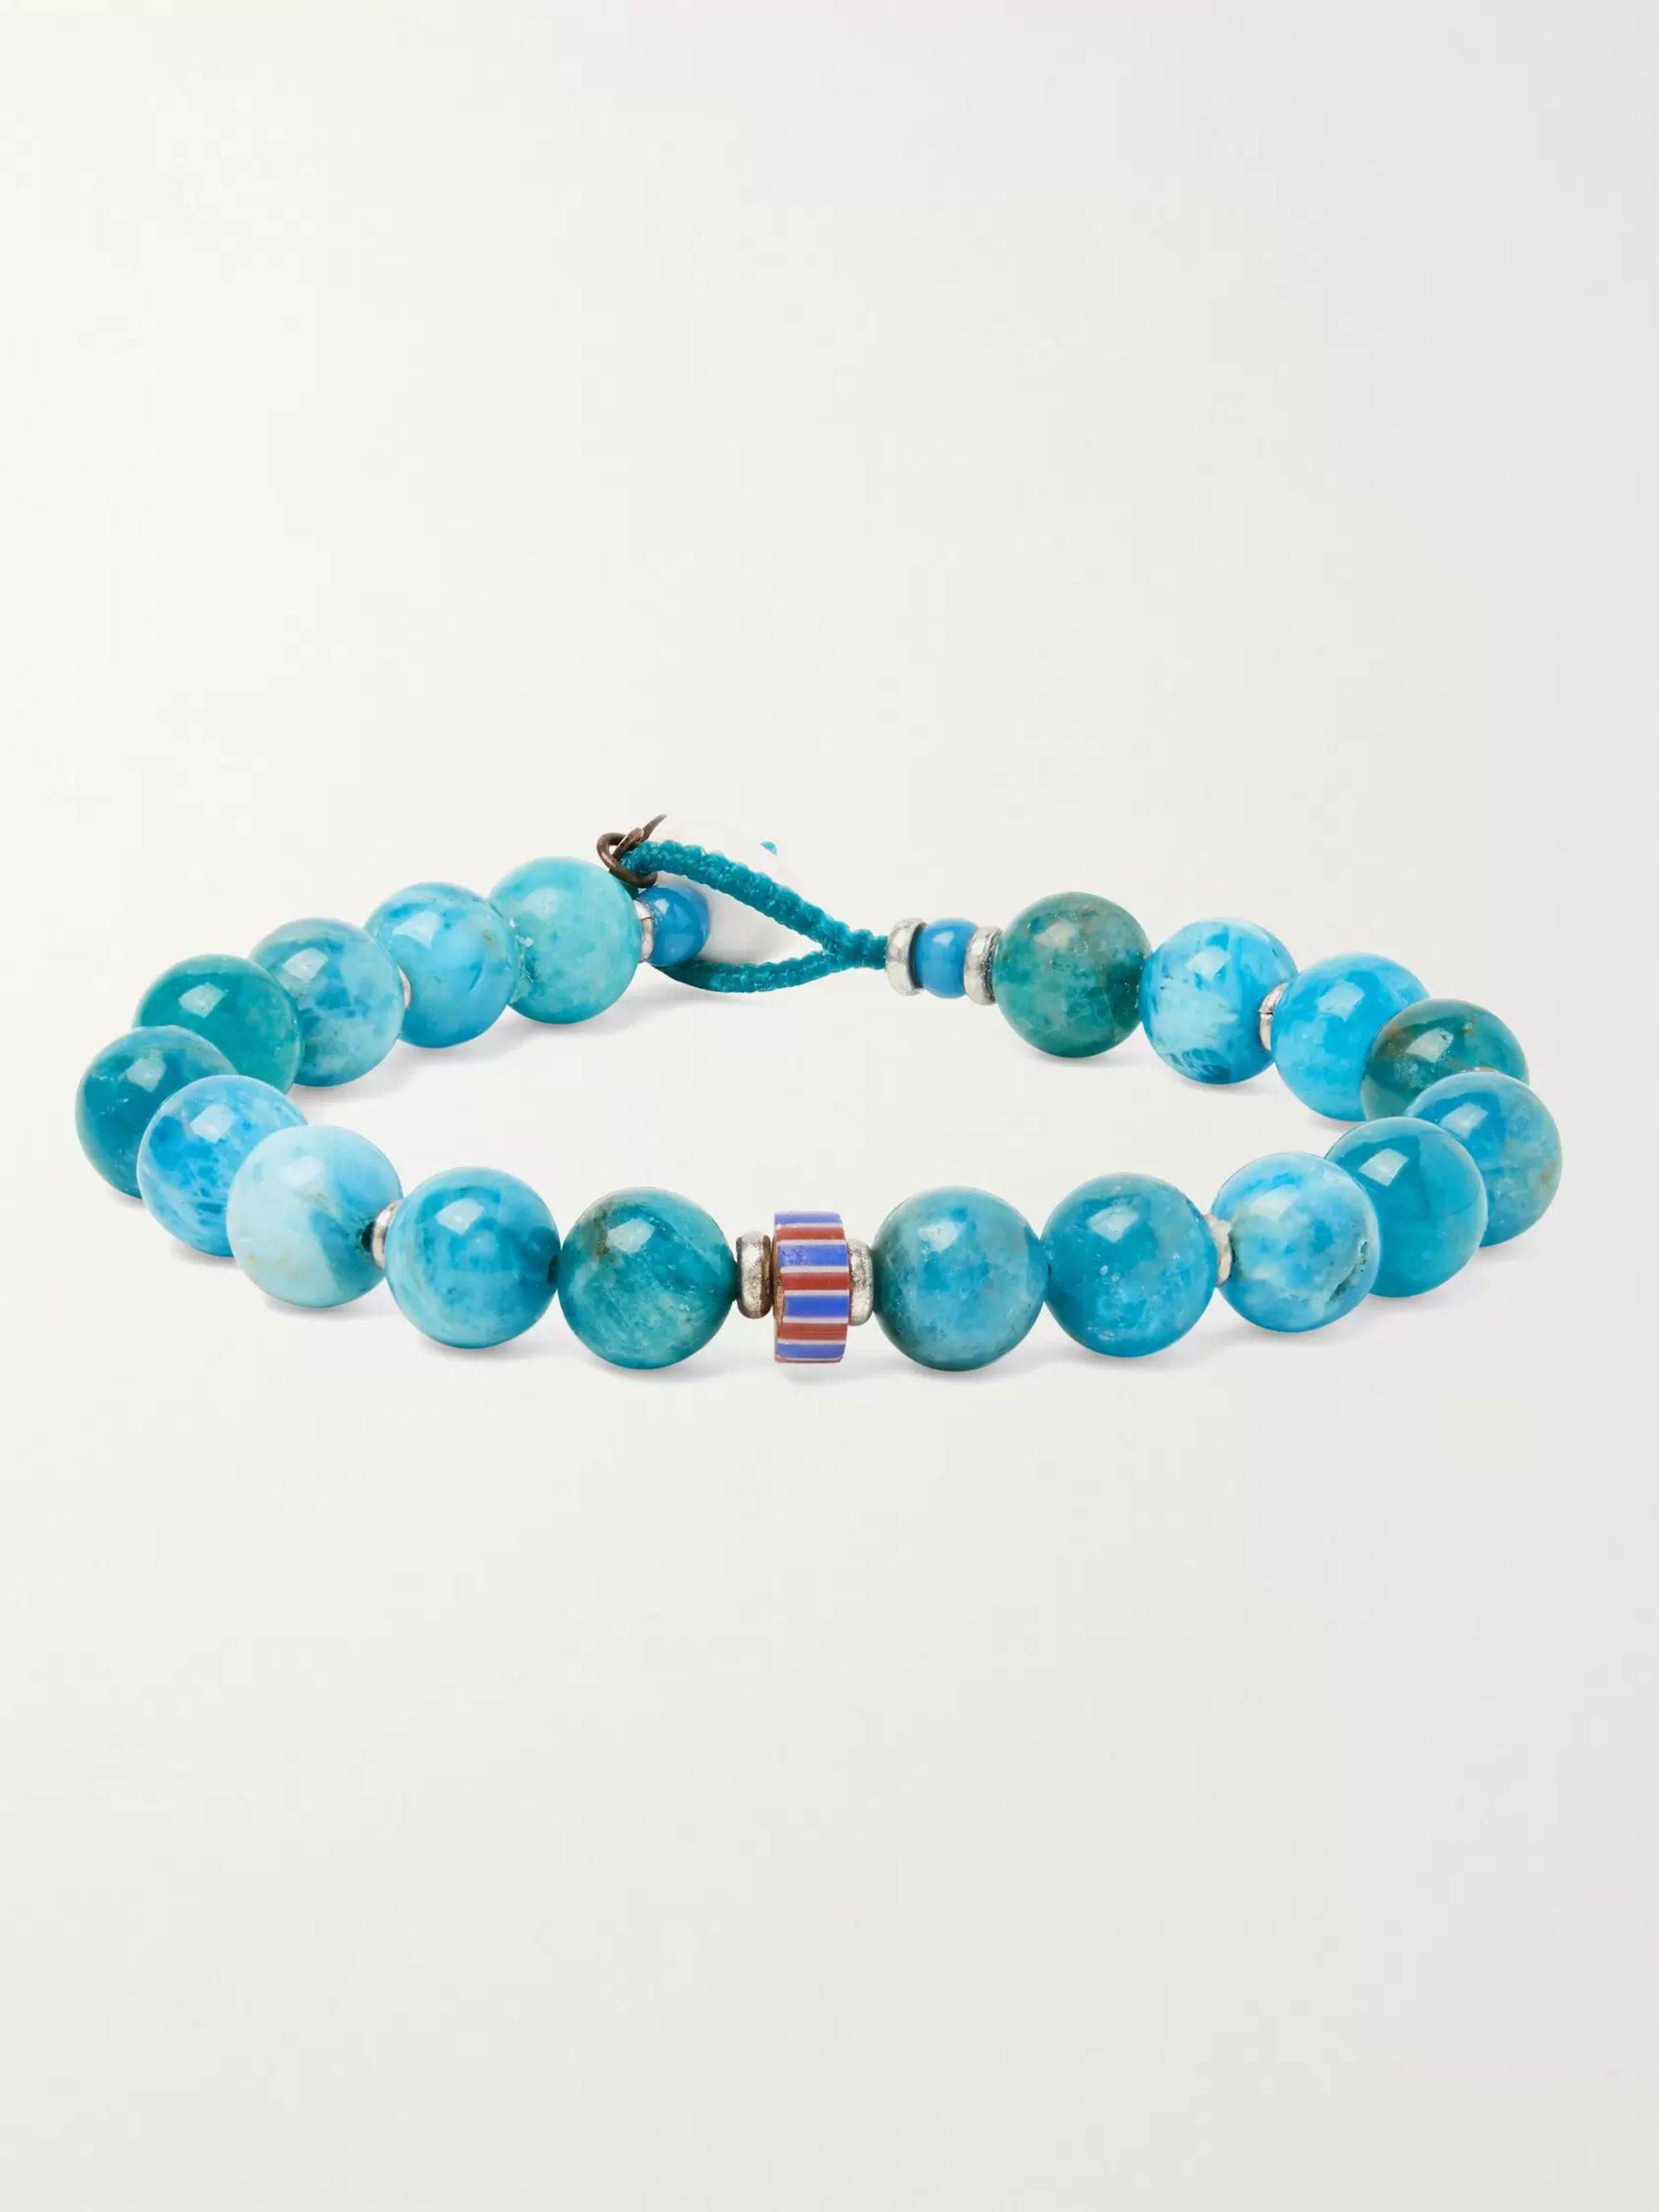 MIKIA Apatite Silver-Plated Glass and Shell Beaded Bracelet,Blue